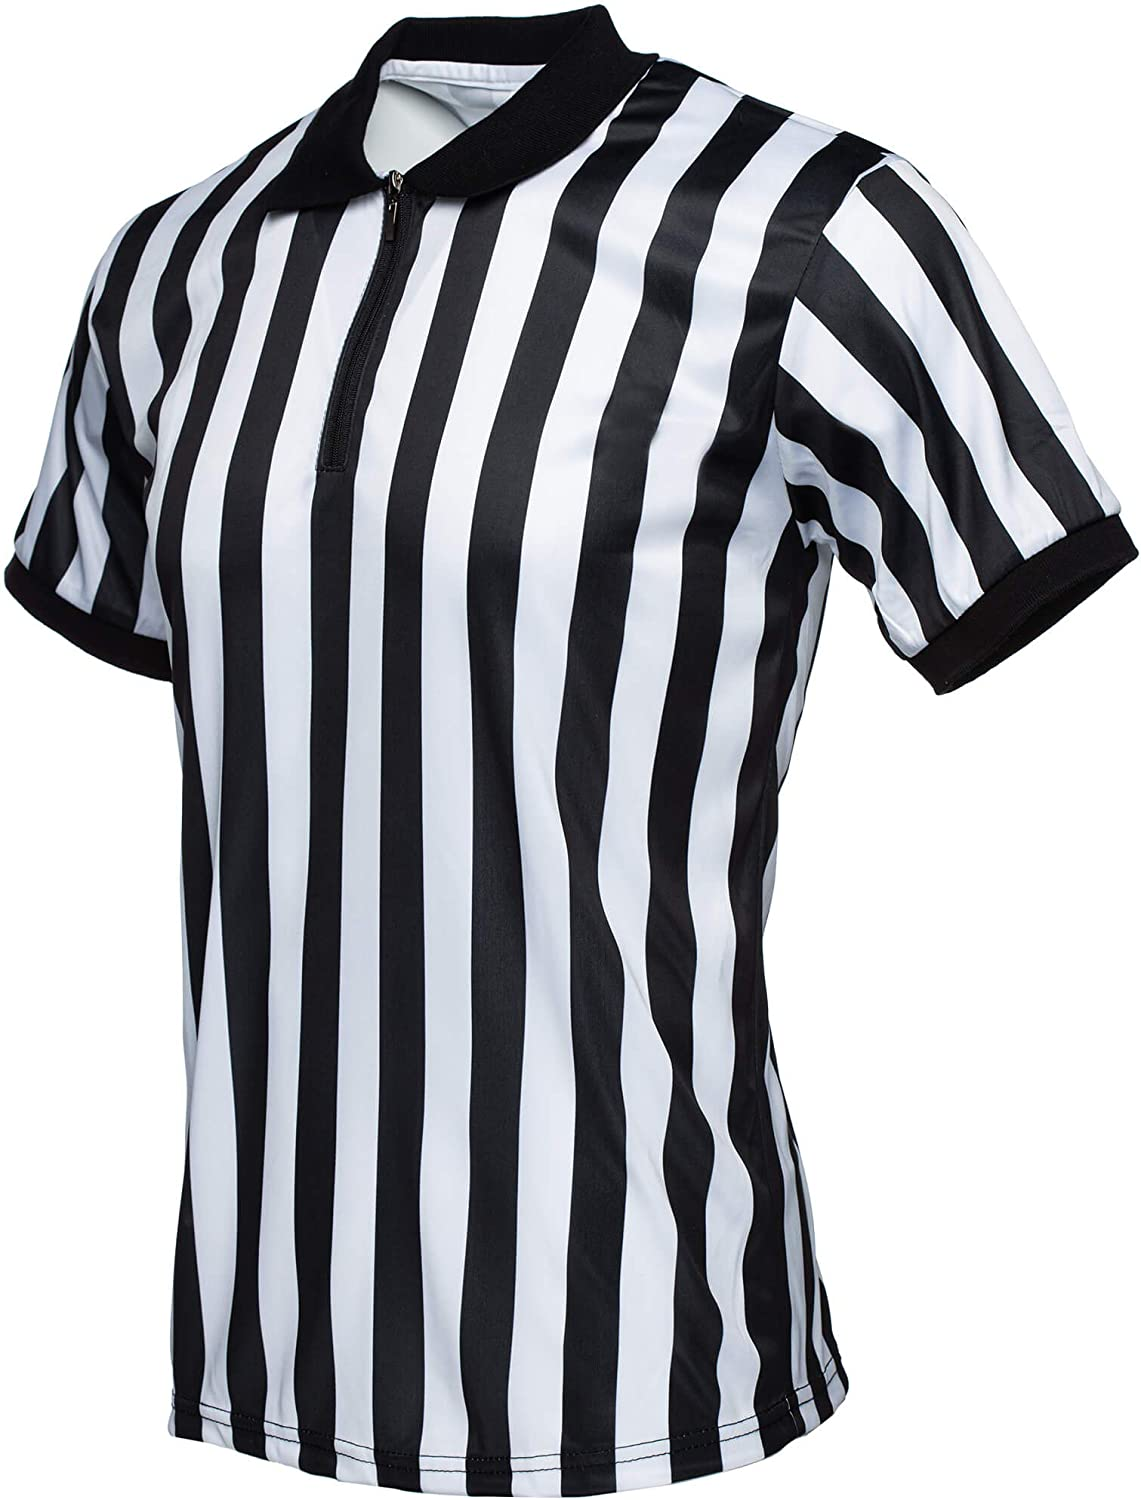 Murray Sporting Goods Collared Referee Shirt | Men's Official Short Sleeve Pro-Style Collar Officiating Referee Shirt for Football, Basketball, Wrestling & Volleyball: Sports & Outdoors